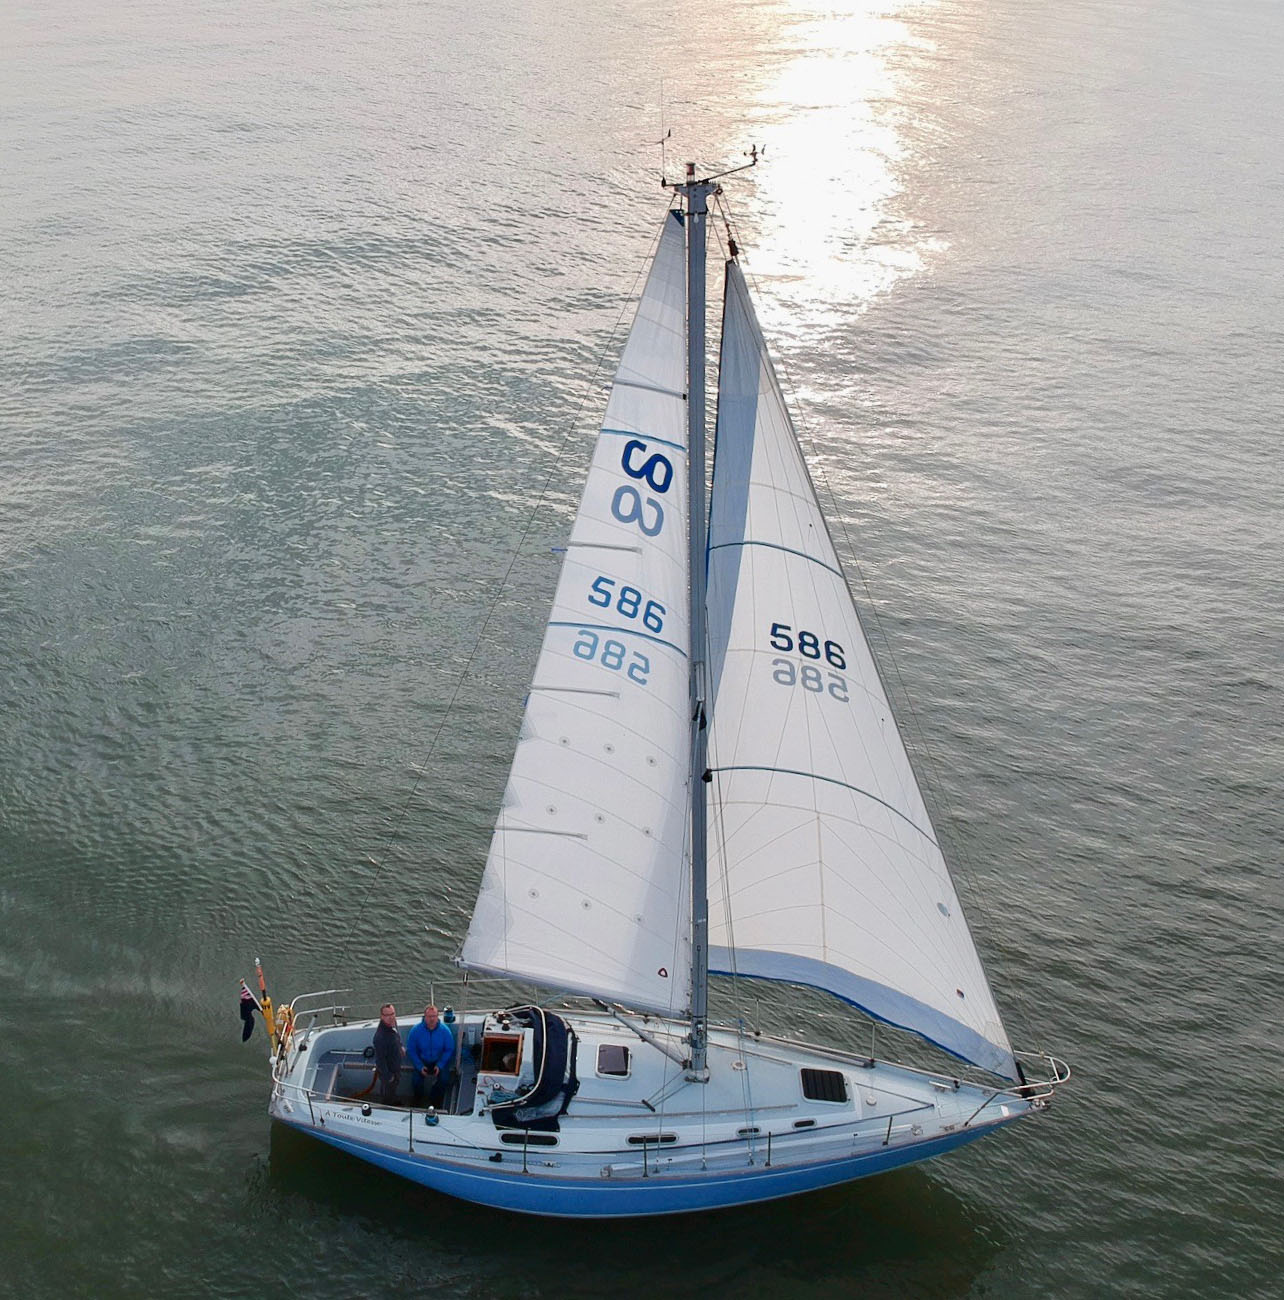 ATV sailing in the Solent